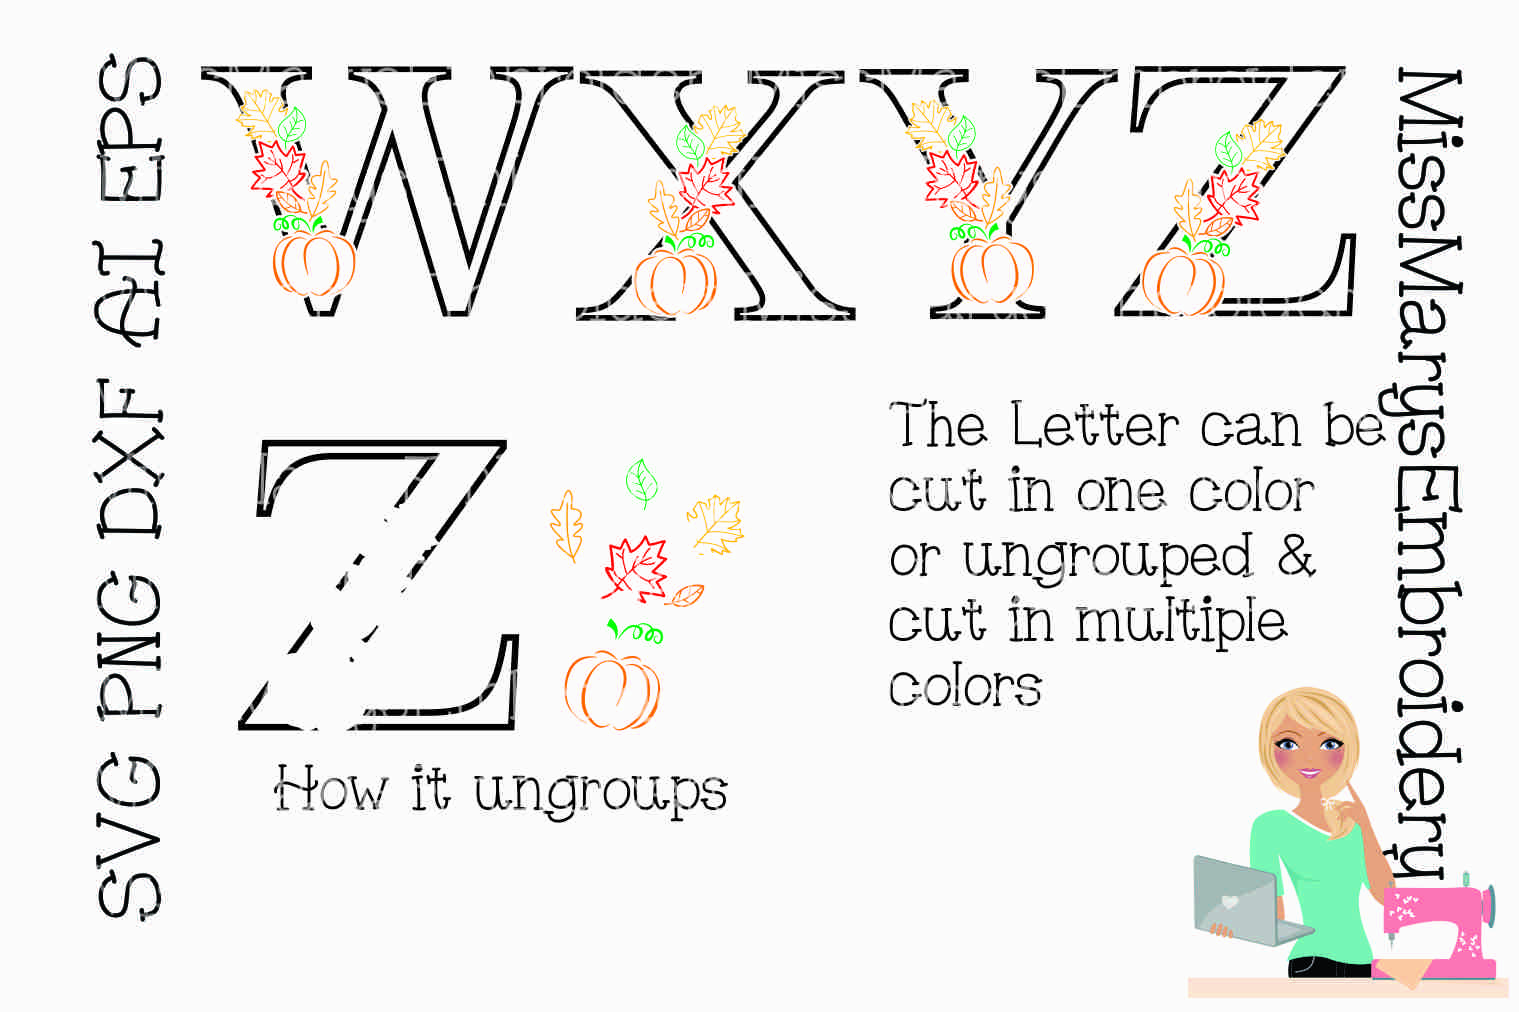 Fall Pumpkin Leaf Letters SVG Cutting File PNG DXF AI EPS example image 3